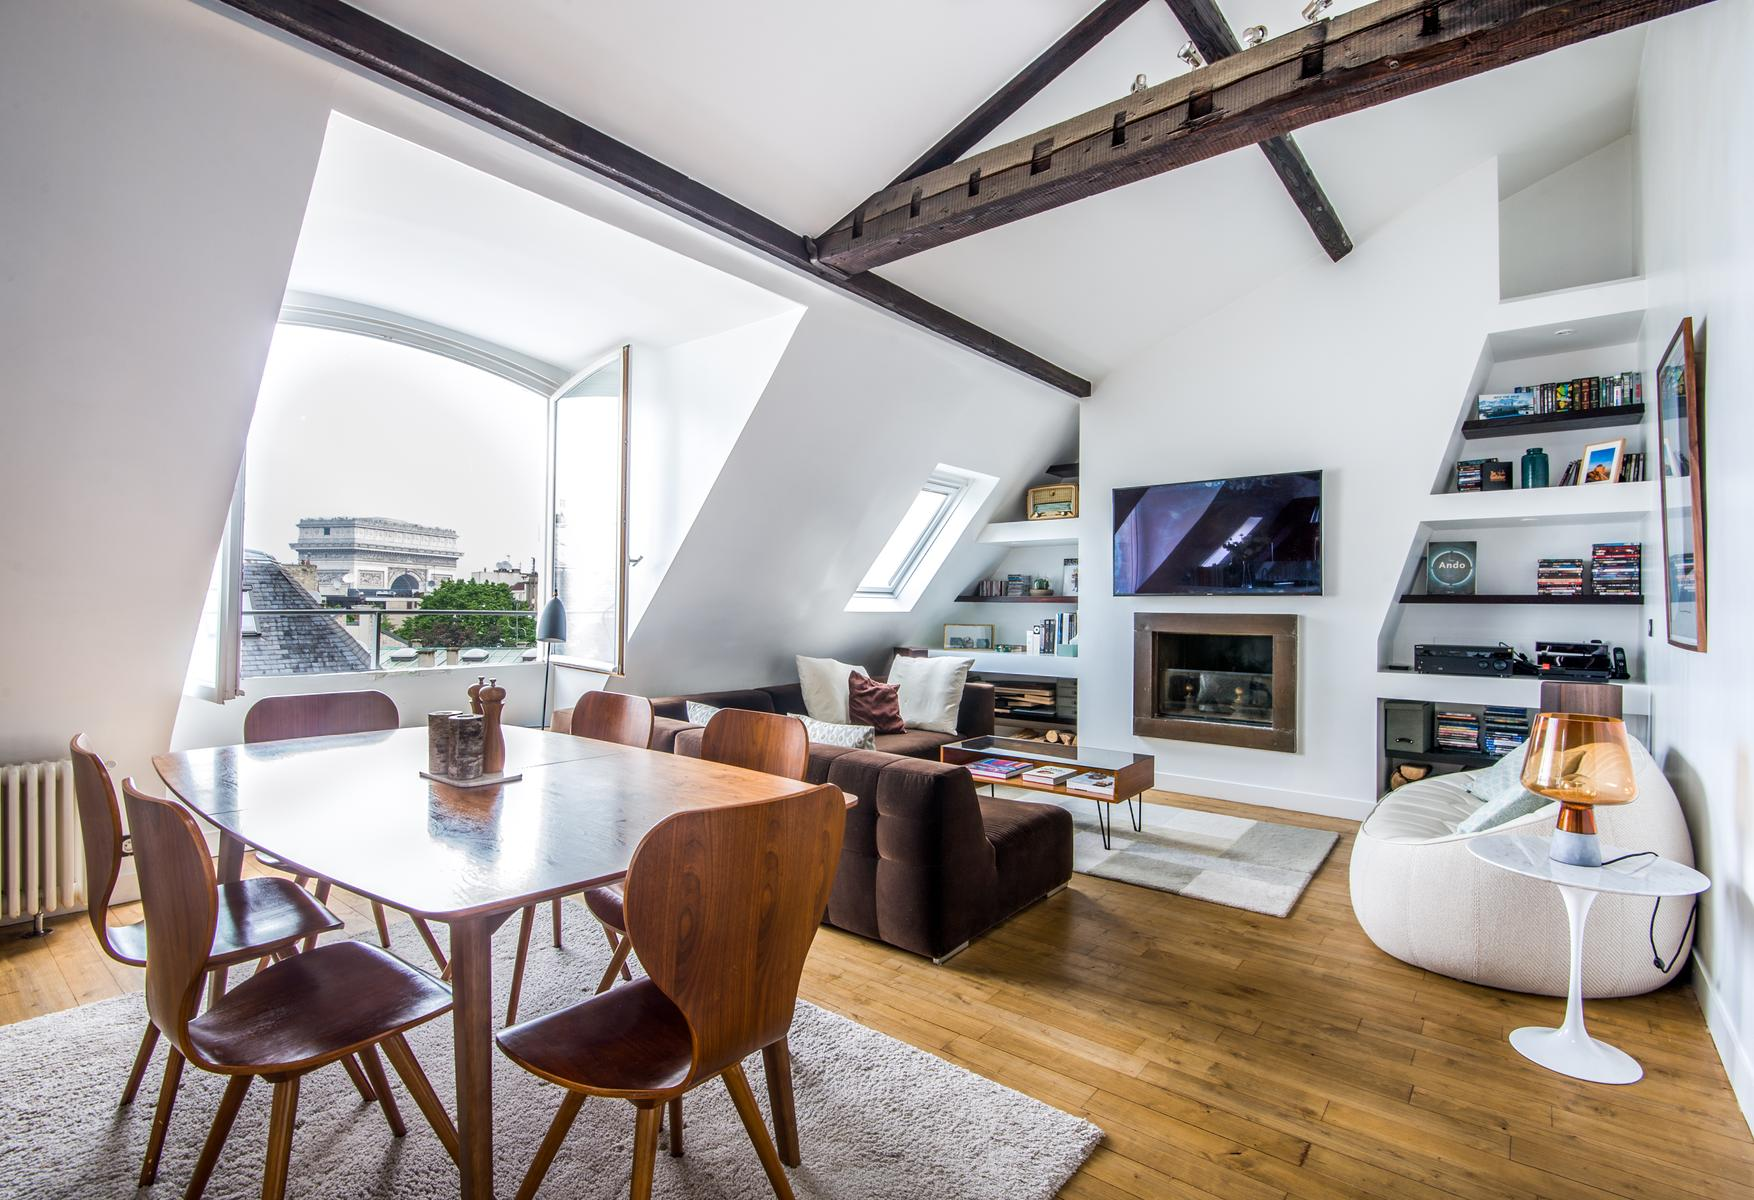 a stylish 2-bedroom Paris luxury apartment overlooking Arc de Triomphe from the window